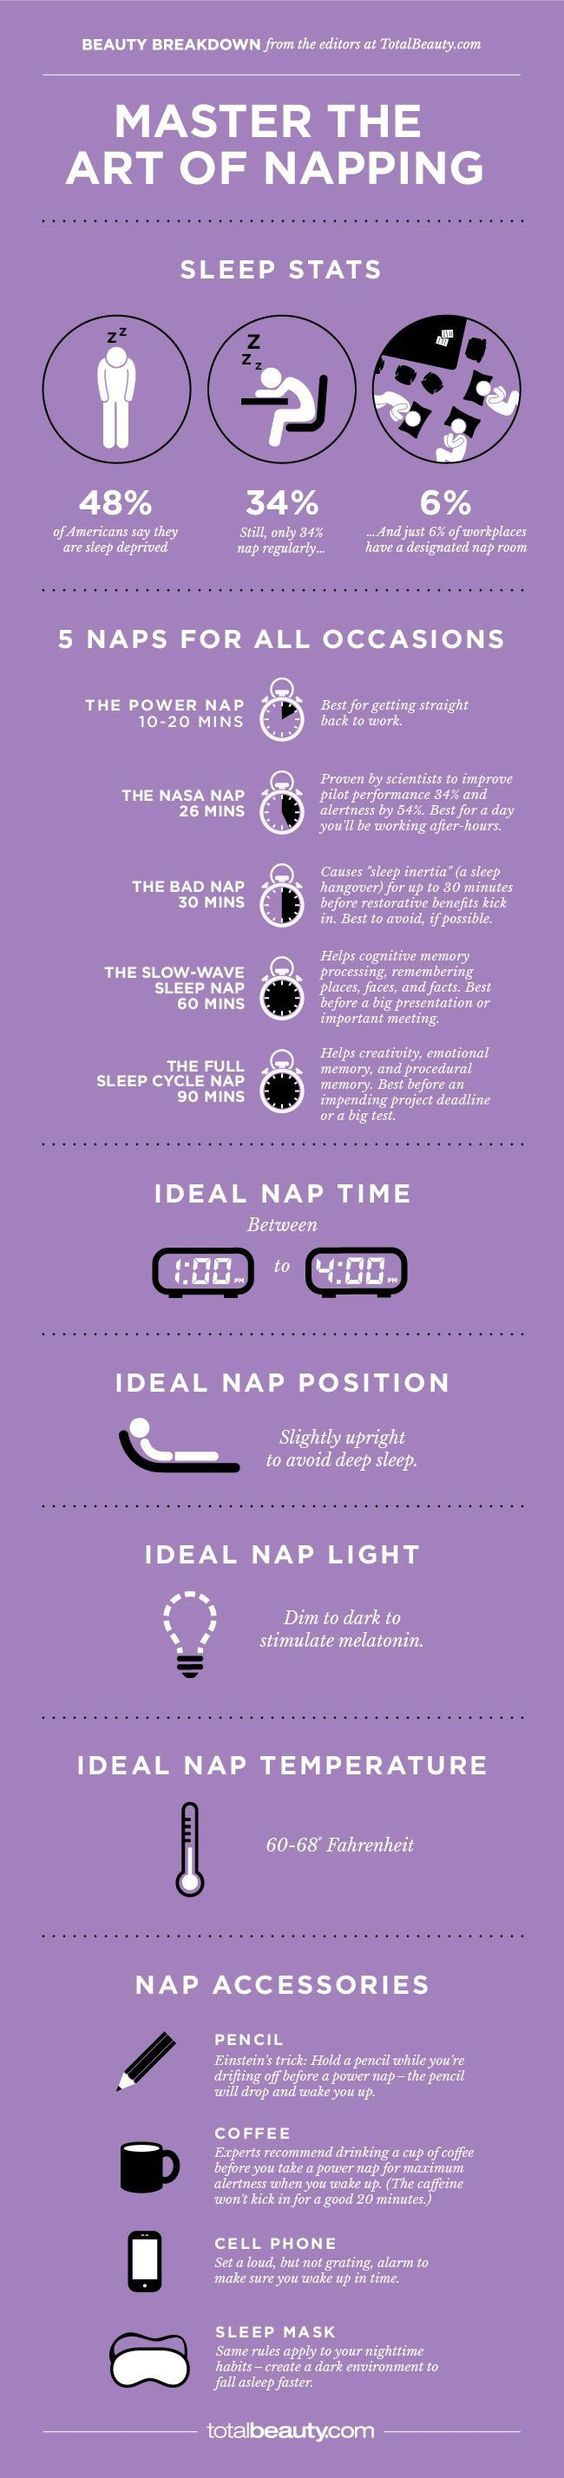 Okay, this is cool. But also way too much work. I'll probably just continue to take unscientific naps...